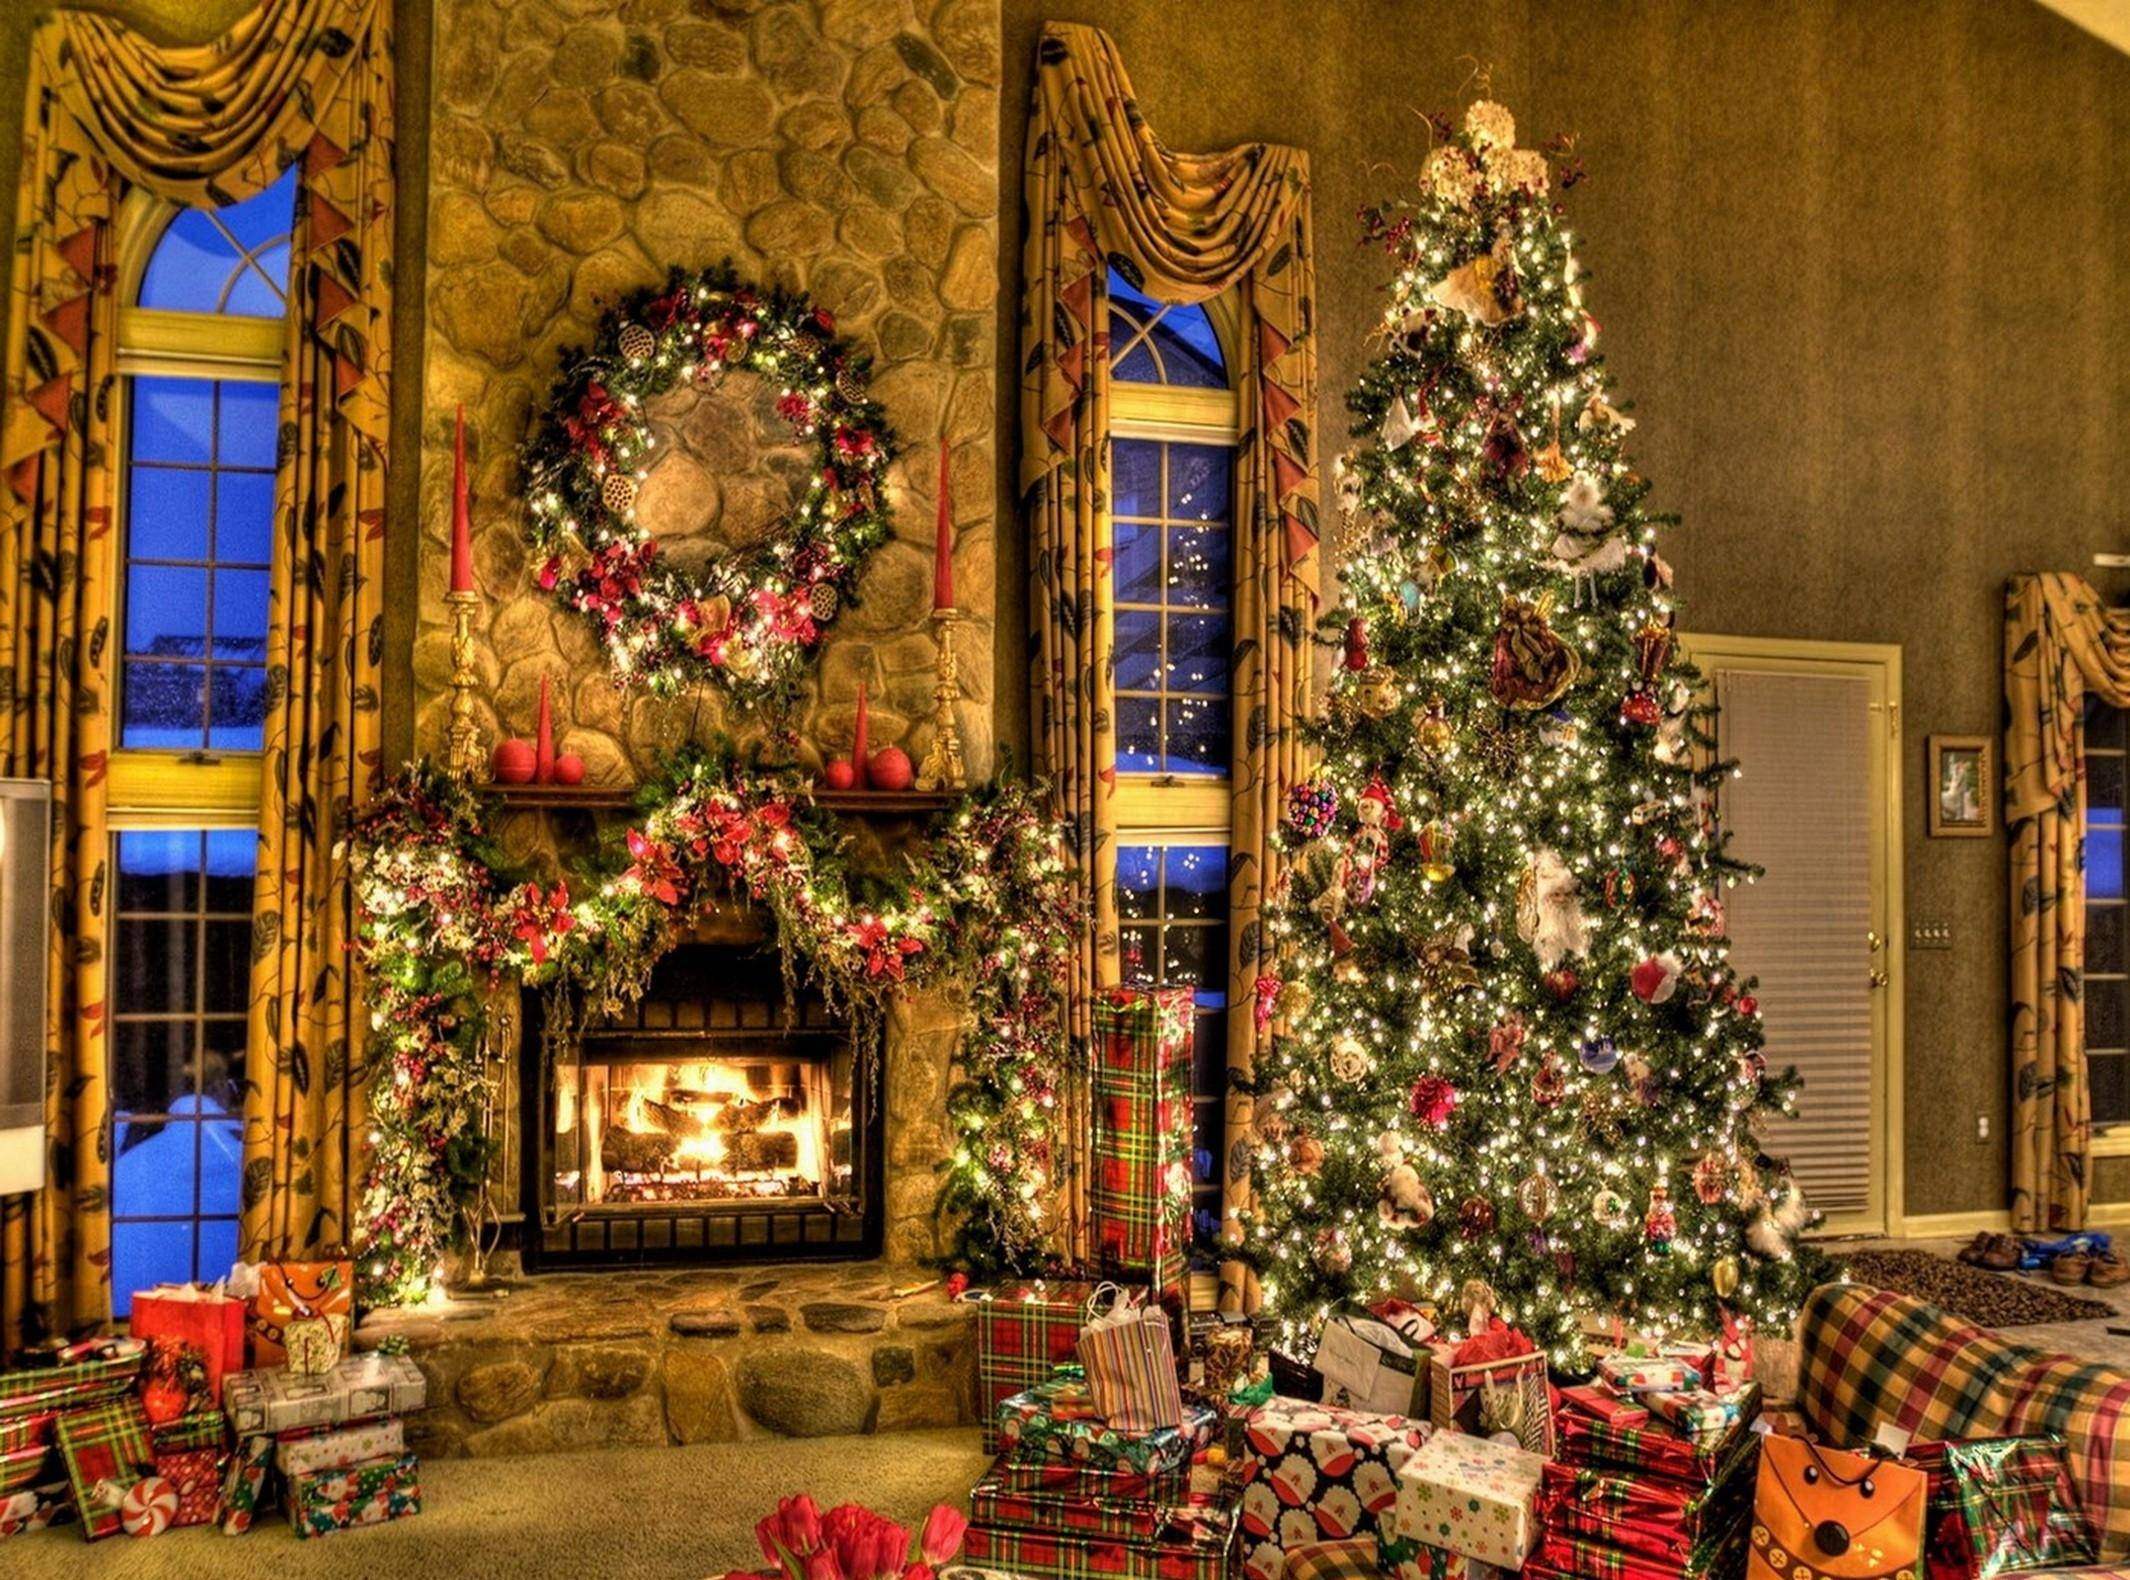 Christmas Fireplace Wallpaper Free Christmas Fireplace Wallpapers Wallpaper Cave